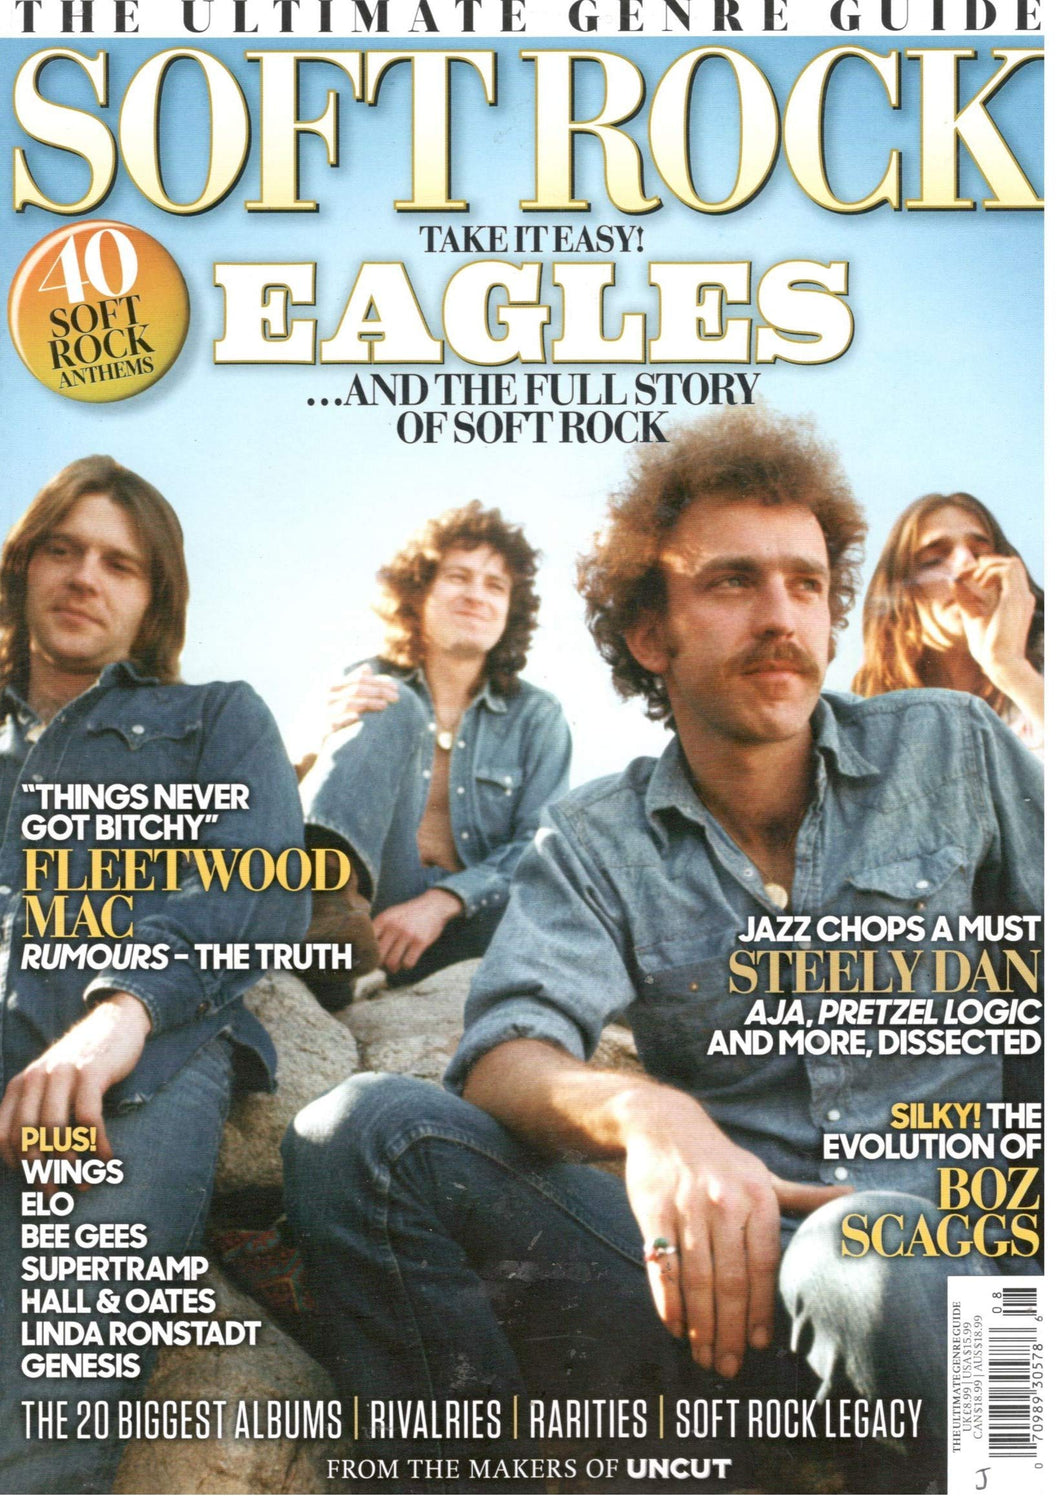 Uncut Ultimate Genre Guide to Soft Rock (2019) - Eagles